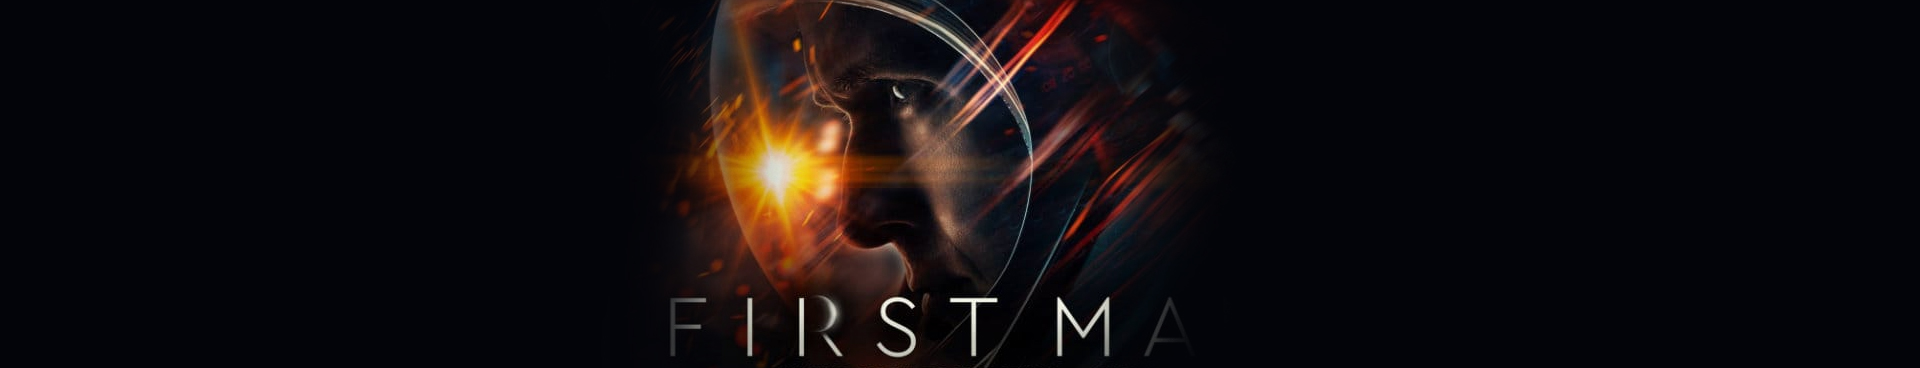 FIRST MAN(ENGLISH)